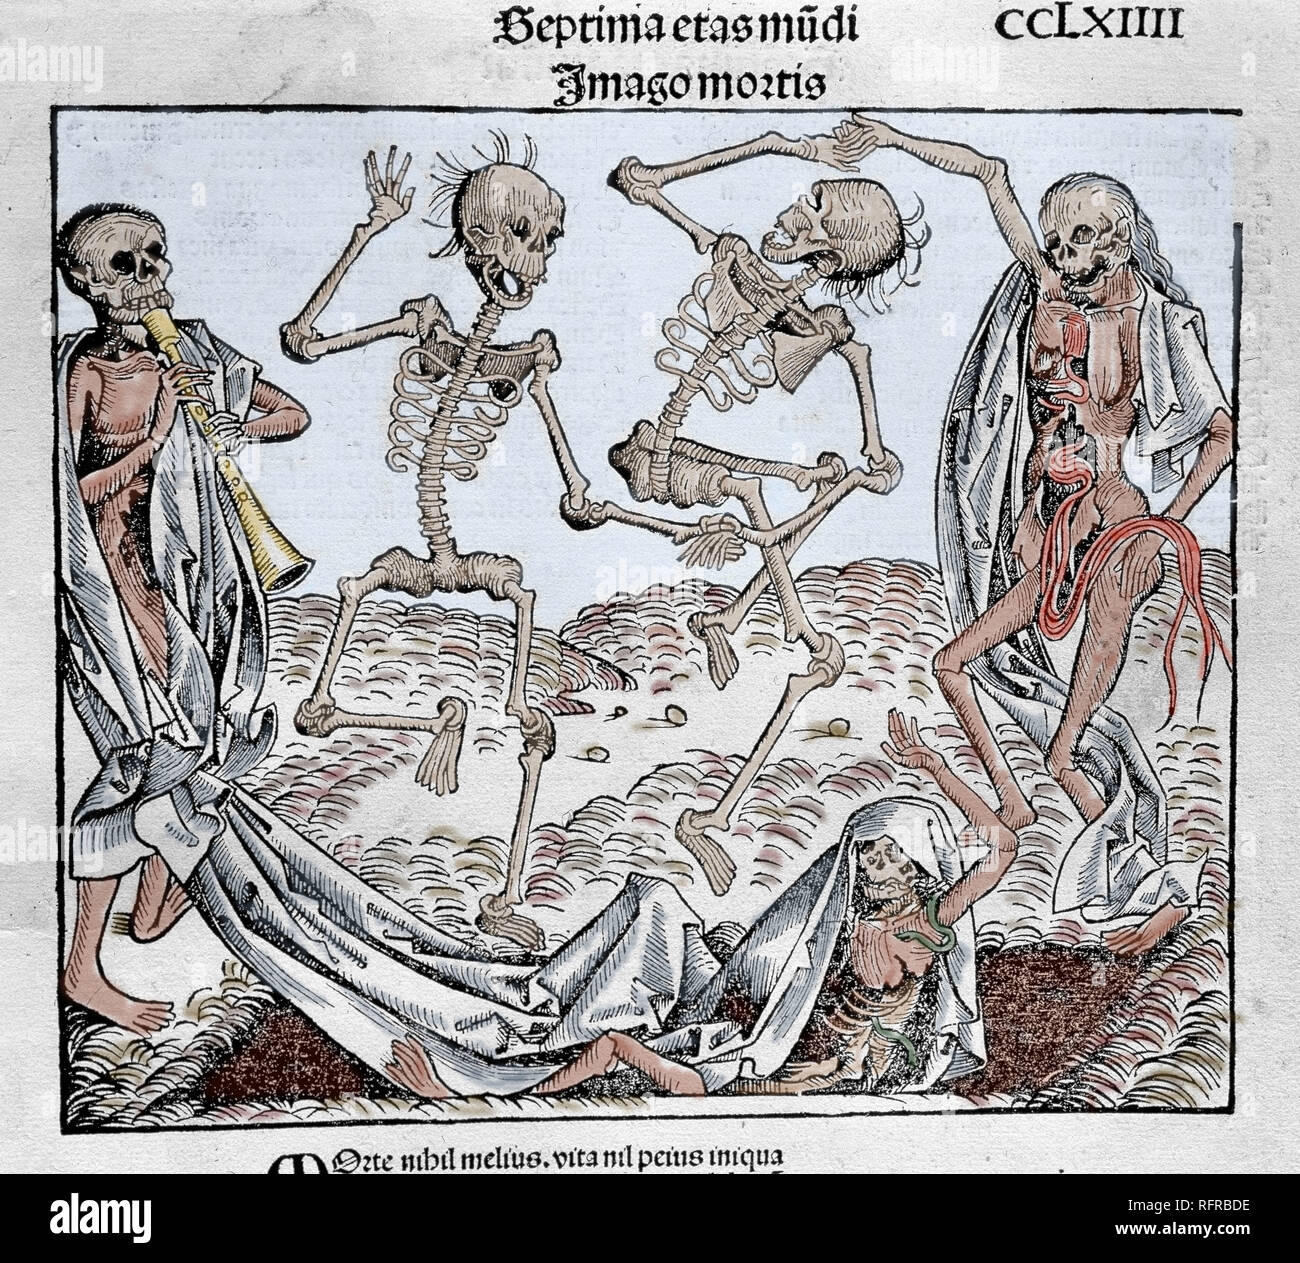 The Dance of Death (1493) by Michael Wolgemut, from the Liber chronicarum by Hartmann Schedel. Coloured engraving. - Stock Image